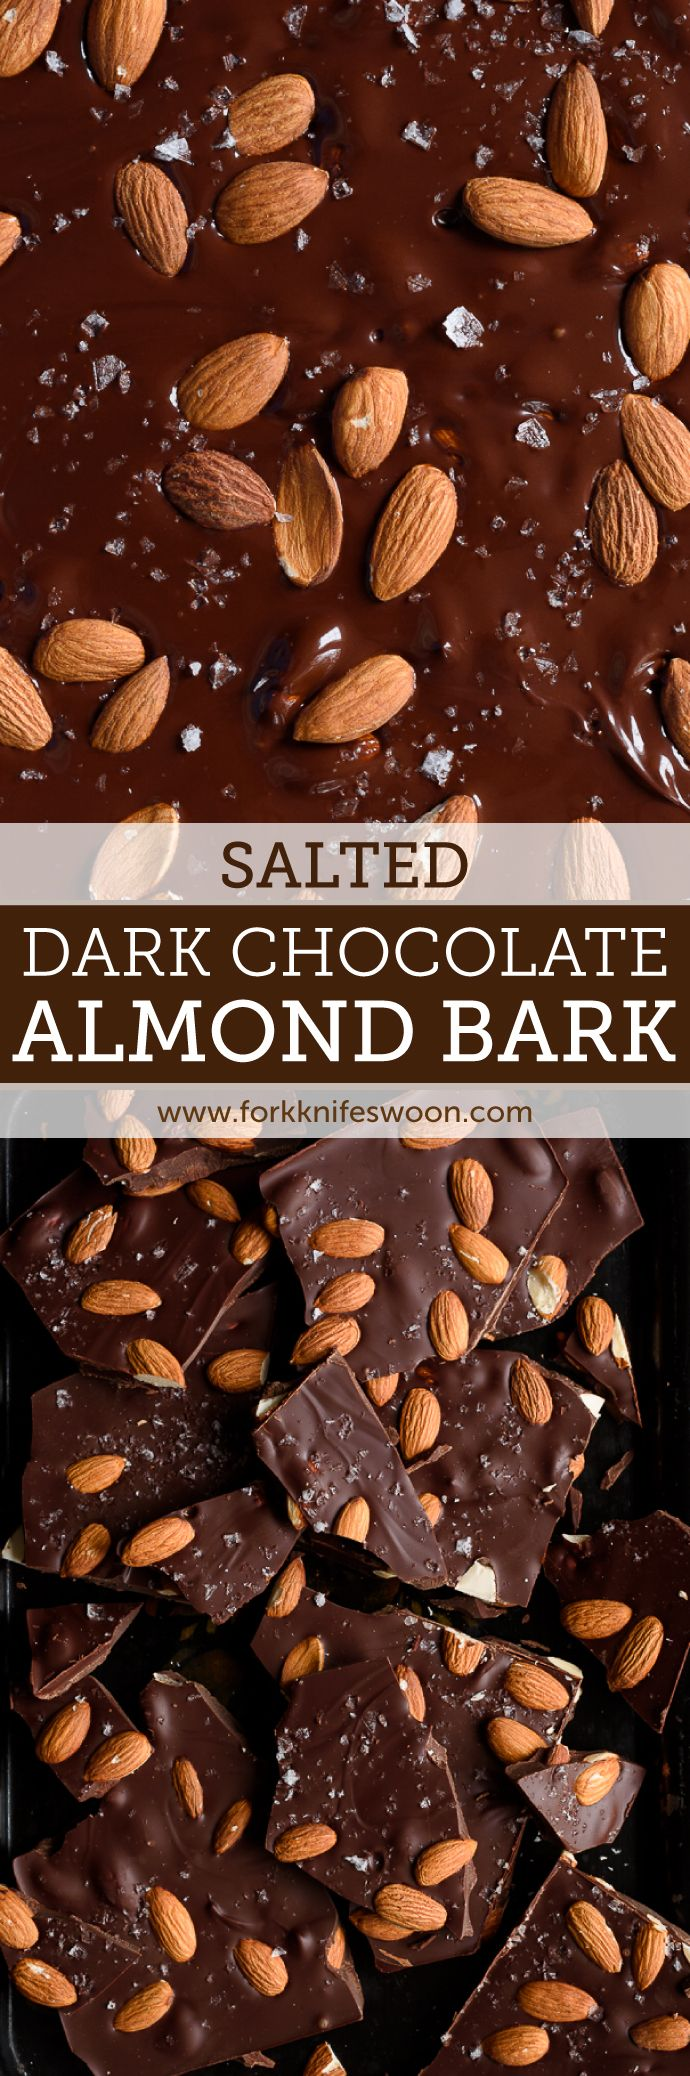 This salted dark chocolate almond bark is super easy and perfect for holiday gifting! | via forkknifeswoon.com